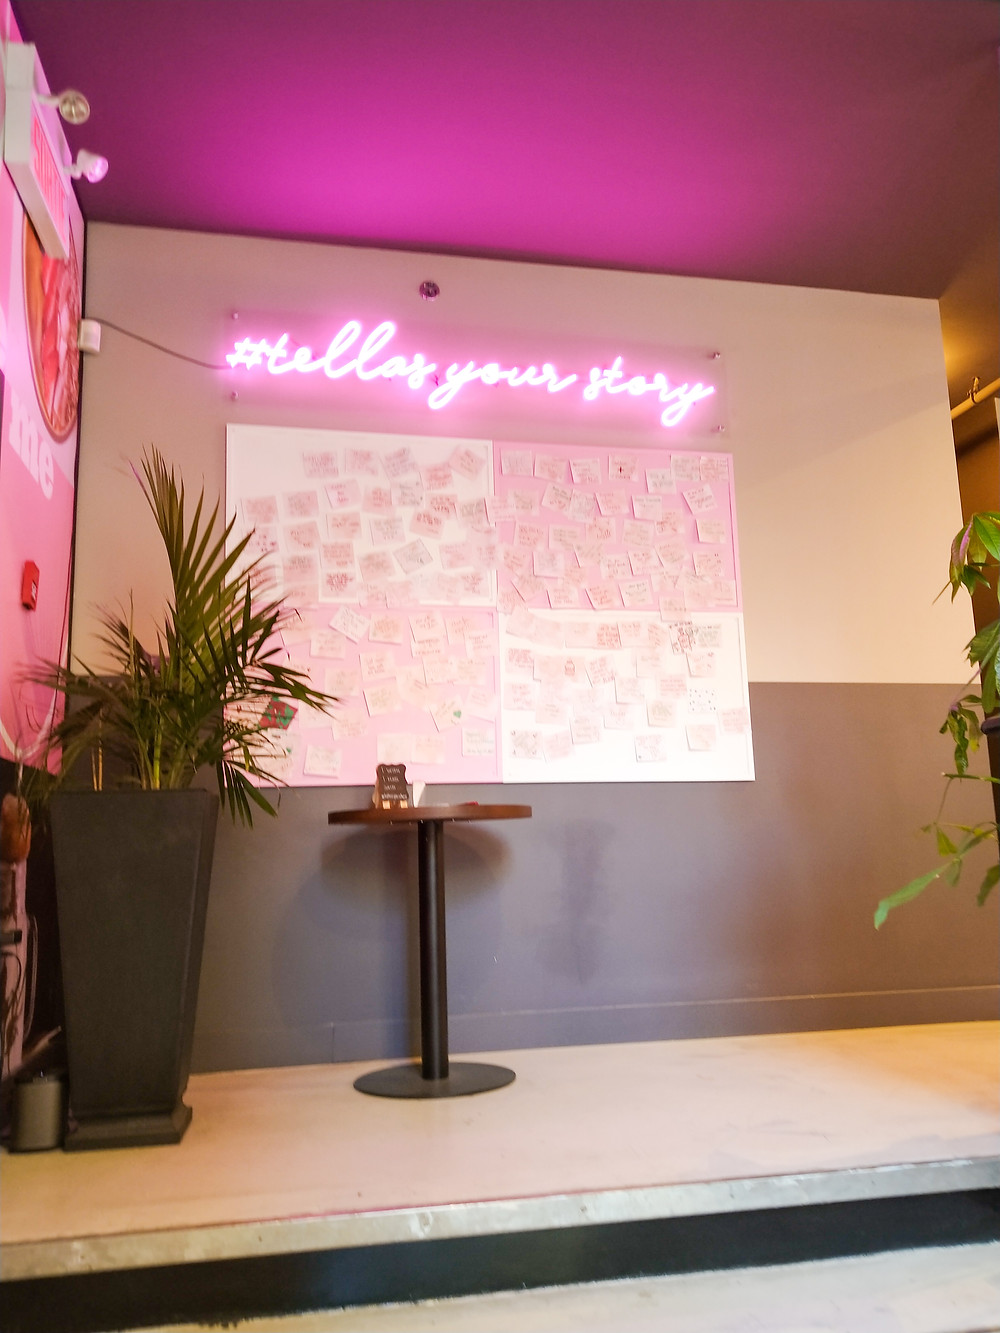 neon sign saying tell us your story - restaurant decor